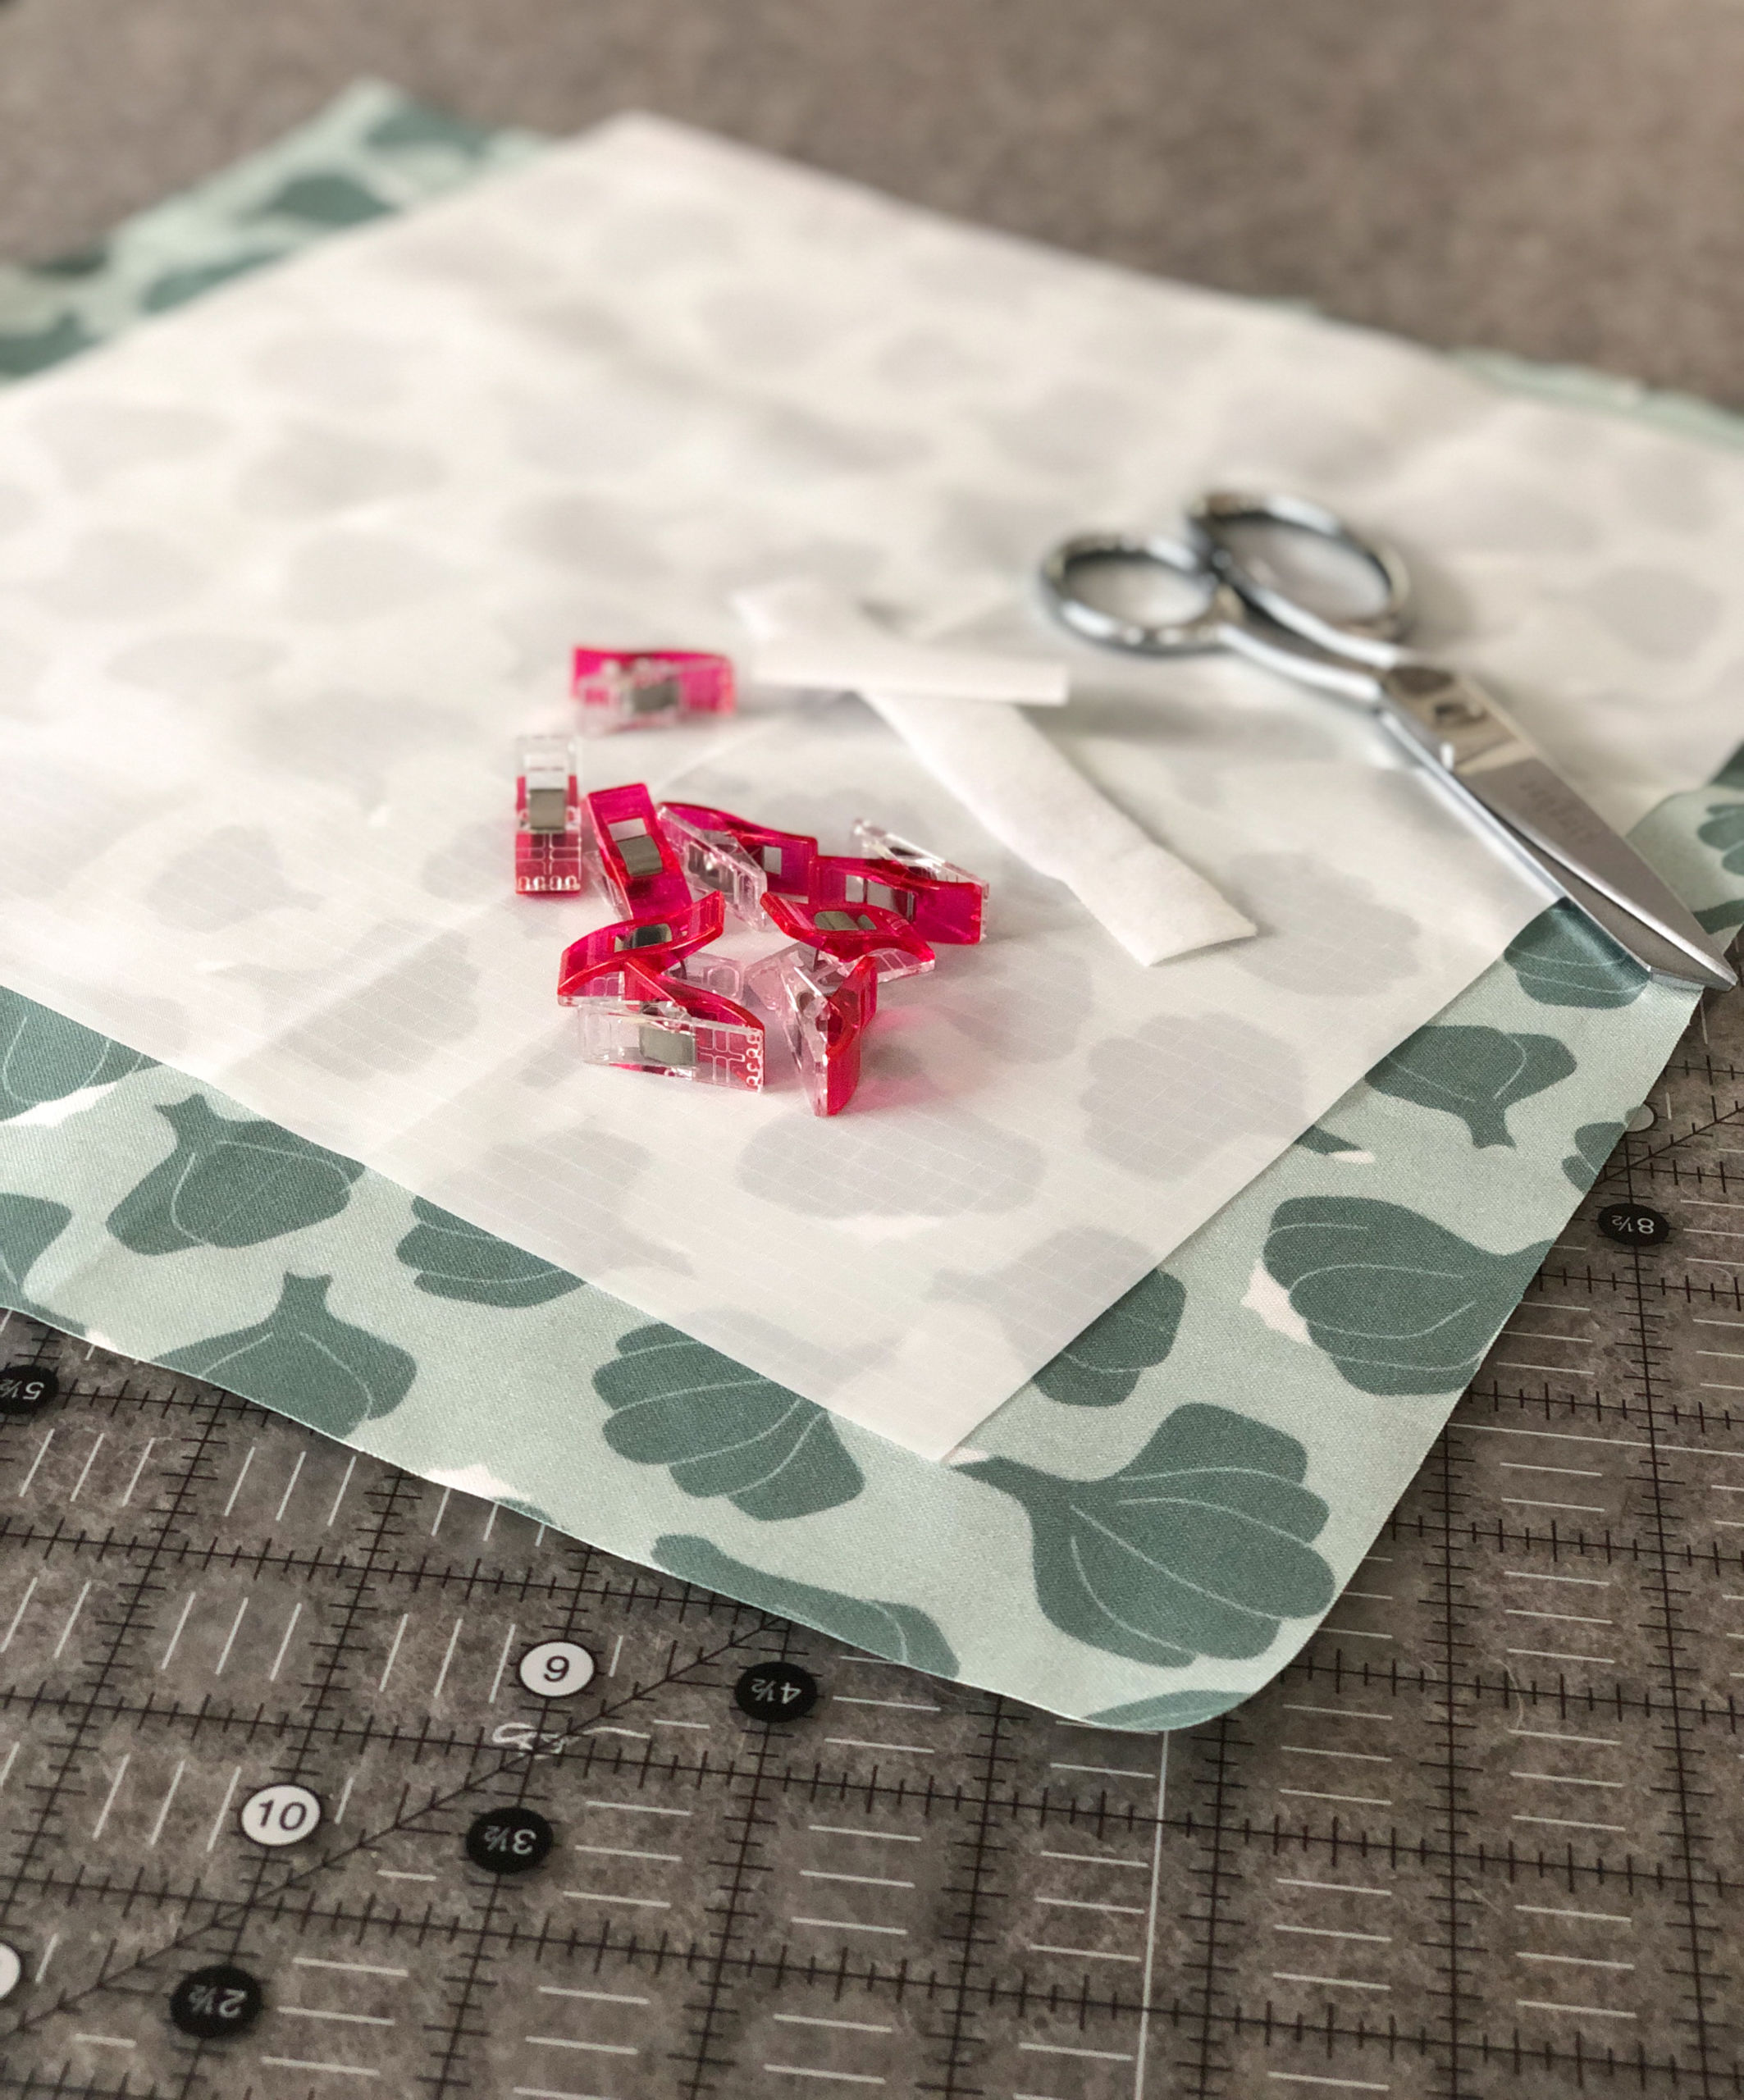 Add an easy homemade touch to your picnic or lunch with this DIY reusable sandwich wrap tutorial. This step by step photo tutorial shows you how to sew your own reusable sandwich wrap out of fabric that can be washed and used every day. suzyquilts.com #quilting #sewingdiy